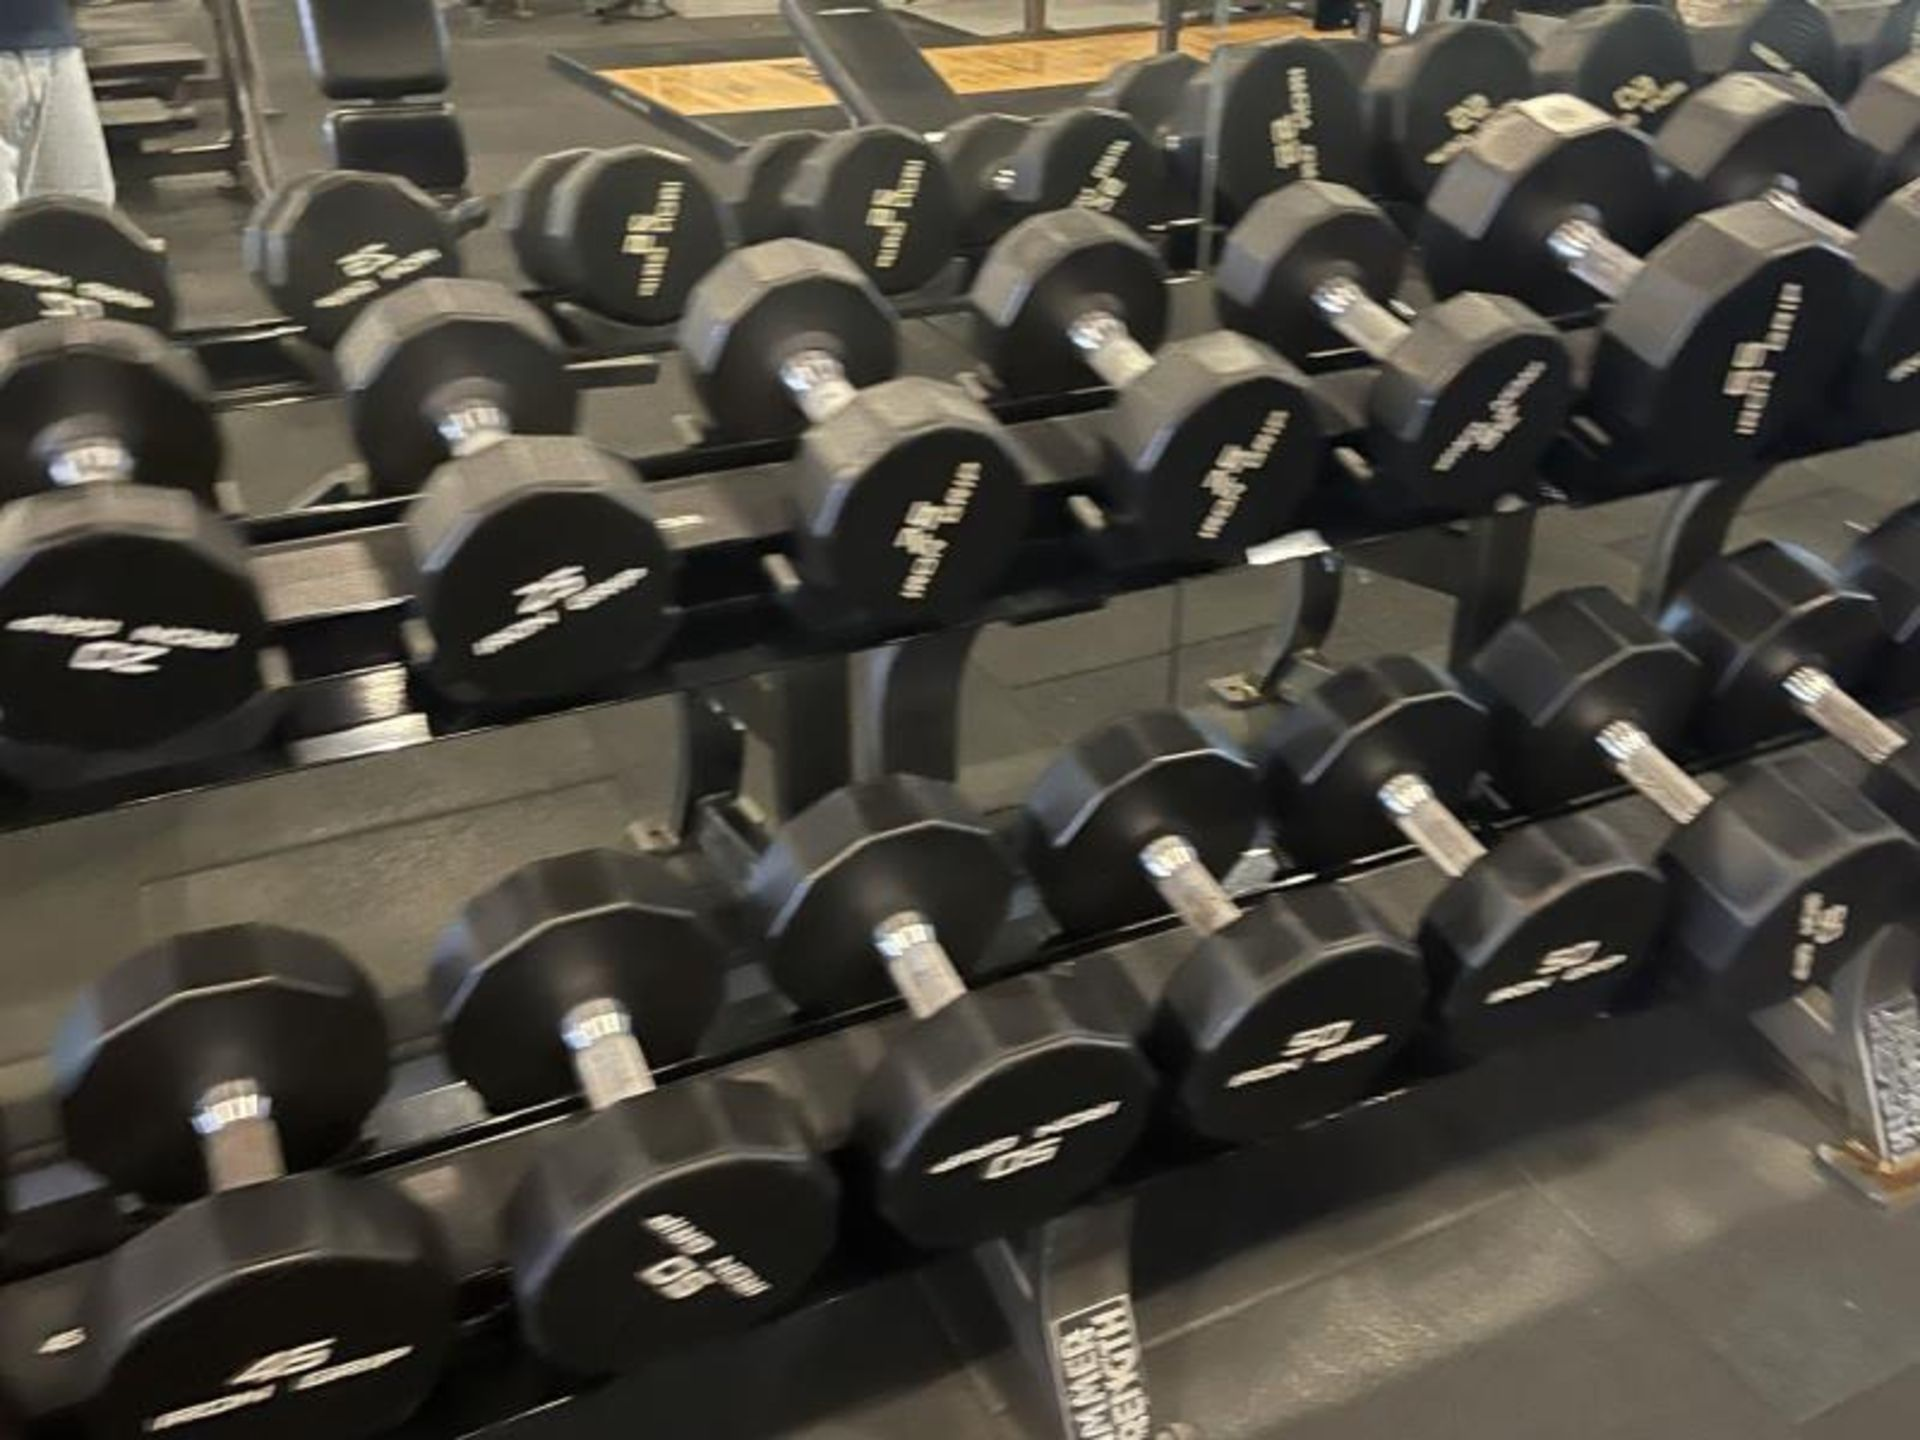 Iron Grip Dumbbell 5-100# with Hammer Strength 2 Tier Racks - Image 5 of 9